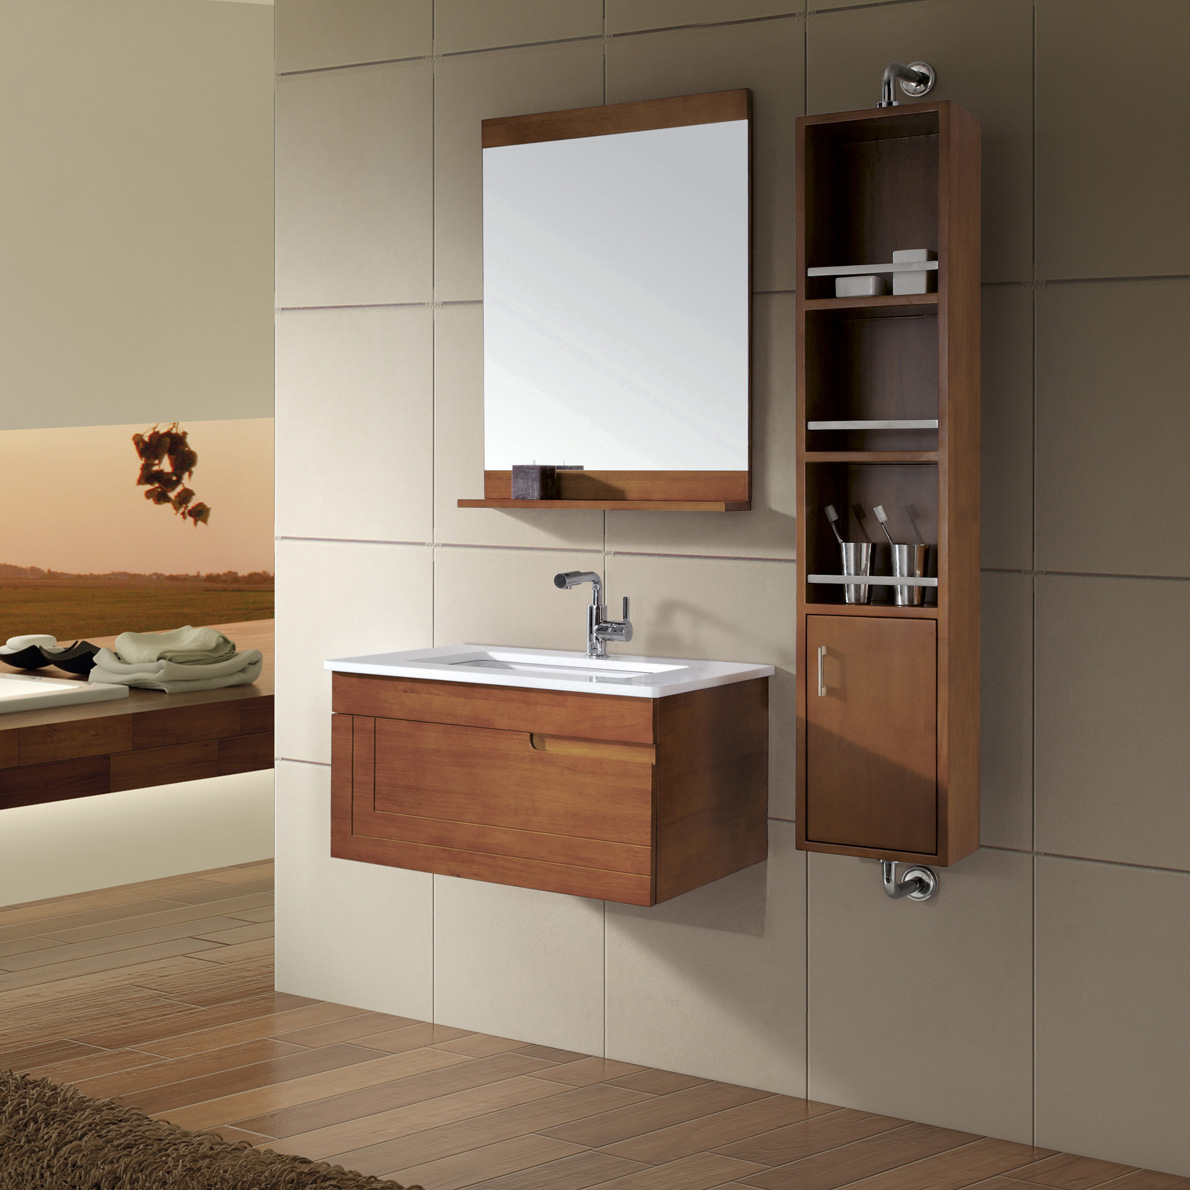 China bathroom cabinet vanity kl269 china bathroom for Bathroom vanity cabinets